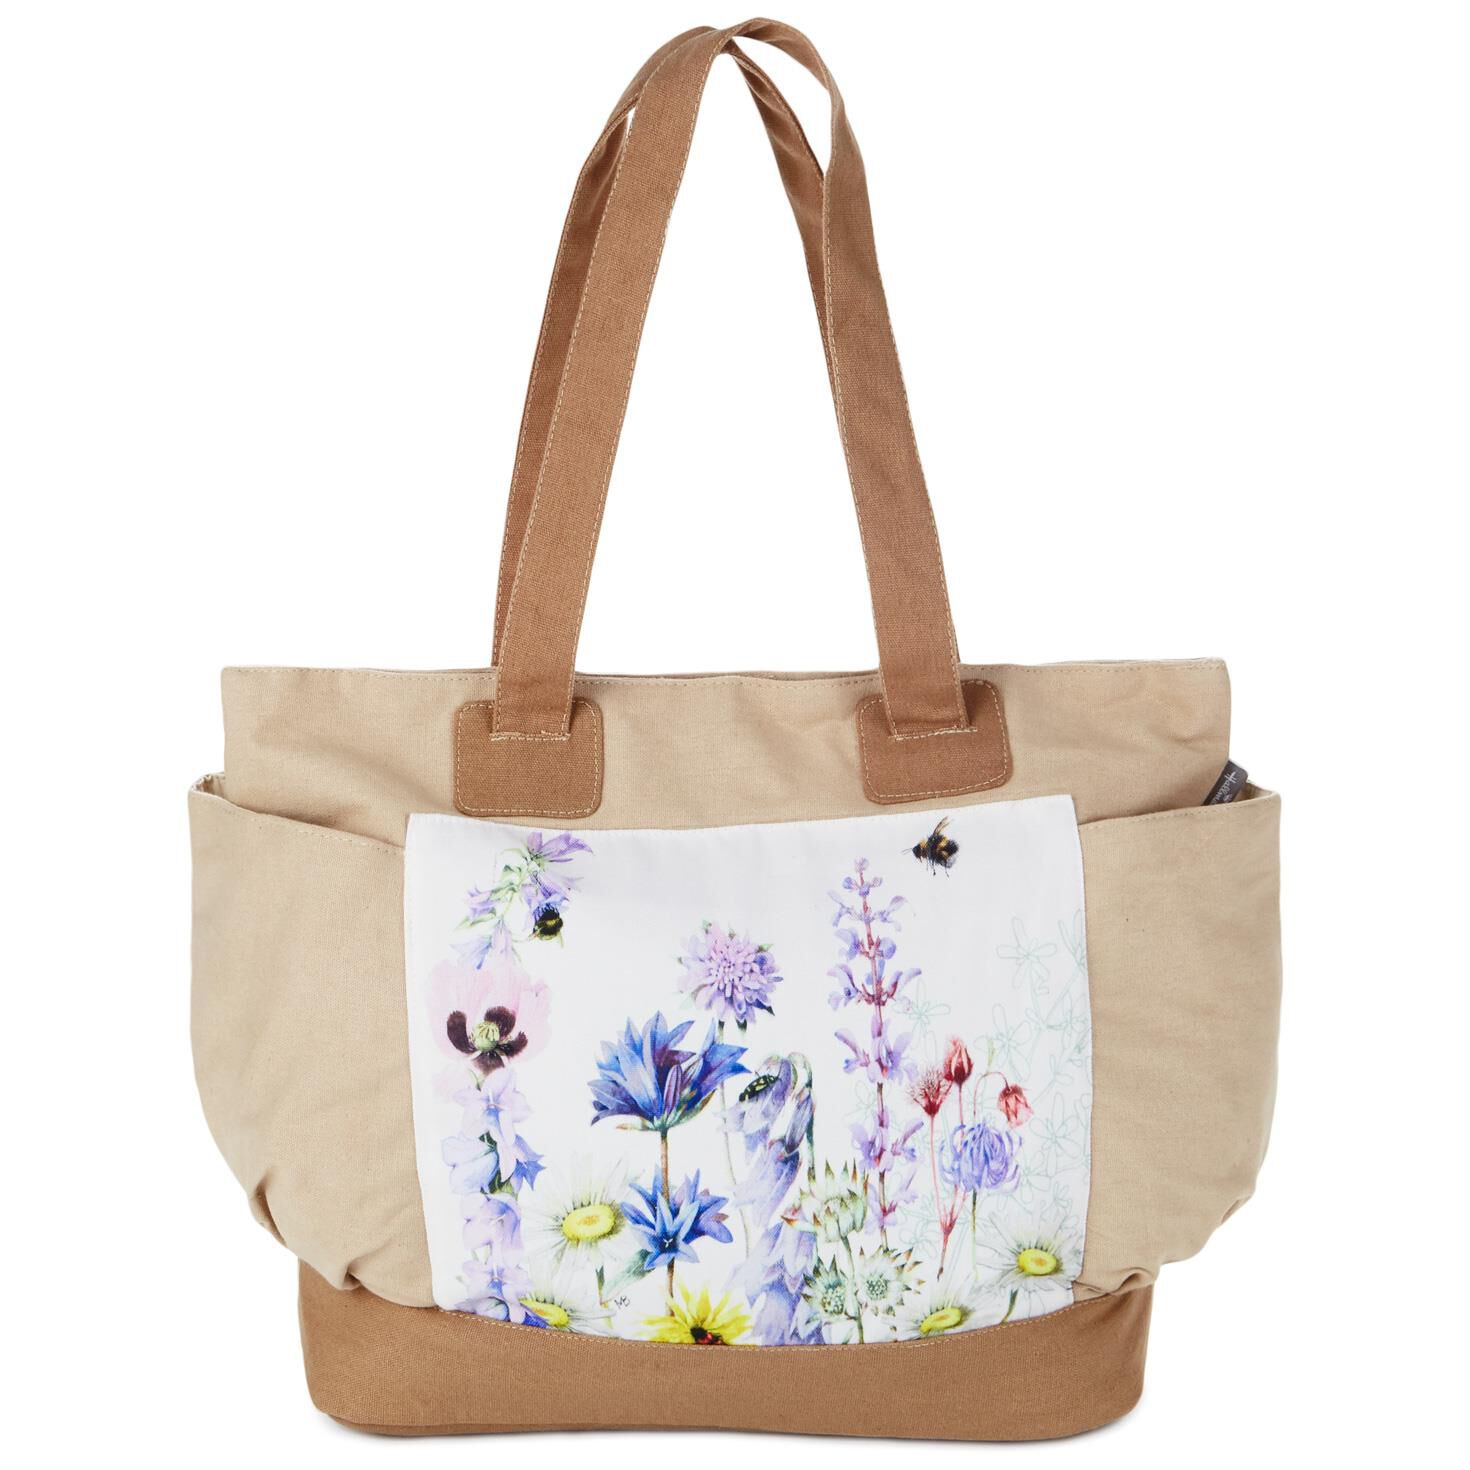 VIDA Tote Bag - Landschap by VIDA BIZQZu